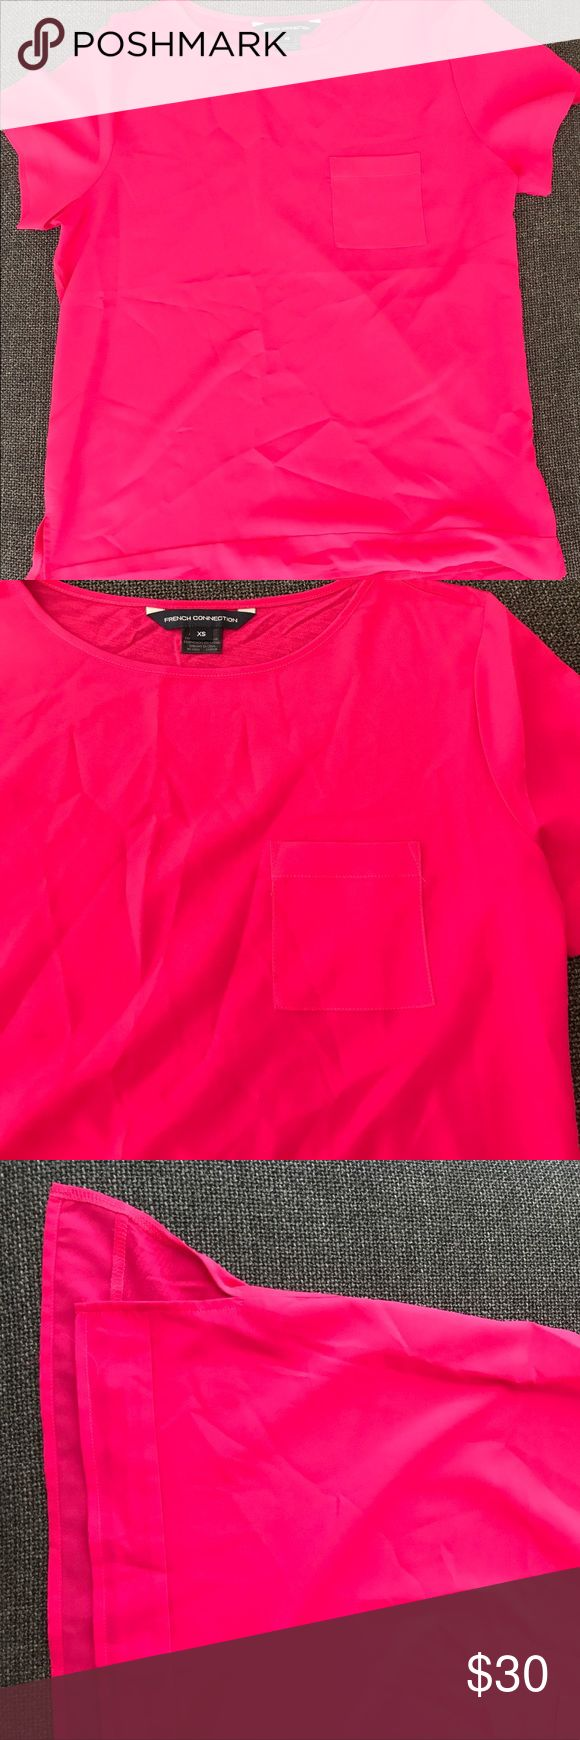 French Connection Dressy T-Shirt Hot pink French Connection shirt with pocket detail and small slit on bottom of each side. Great condition! Also available as bundle with matching skirt French Connection Tops Blouses